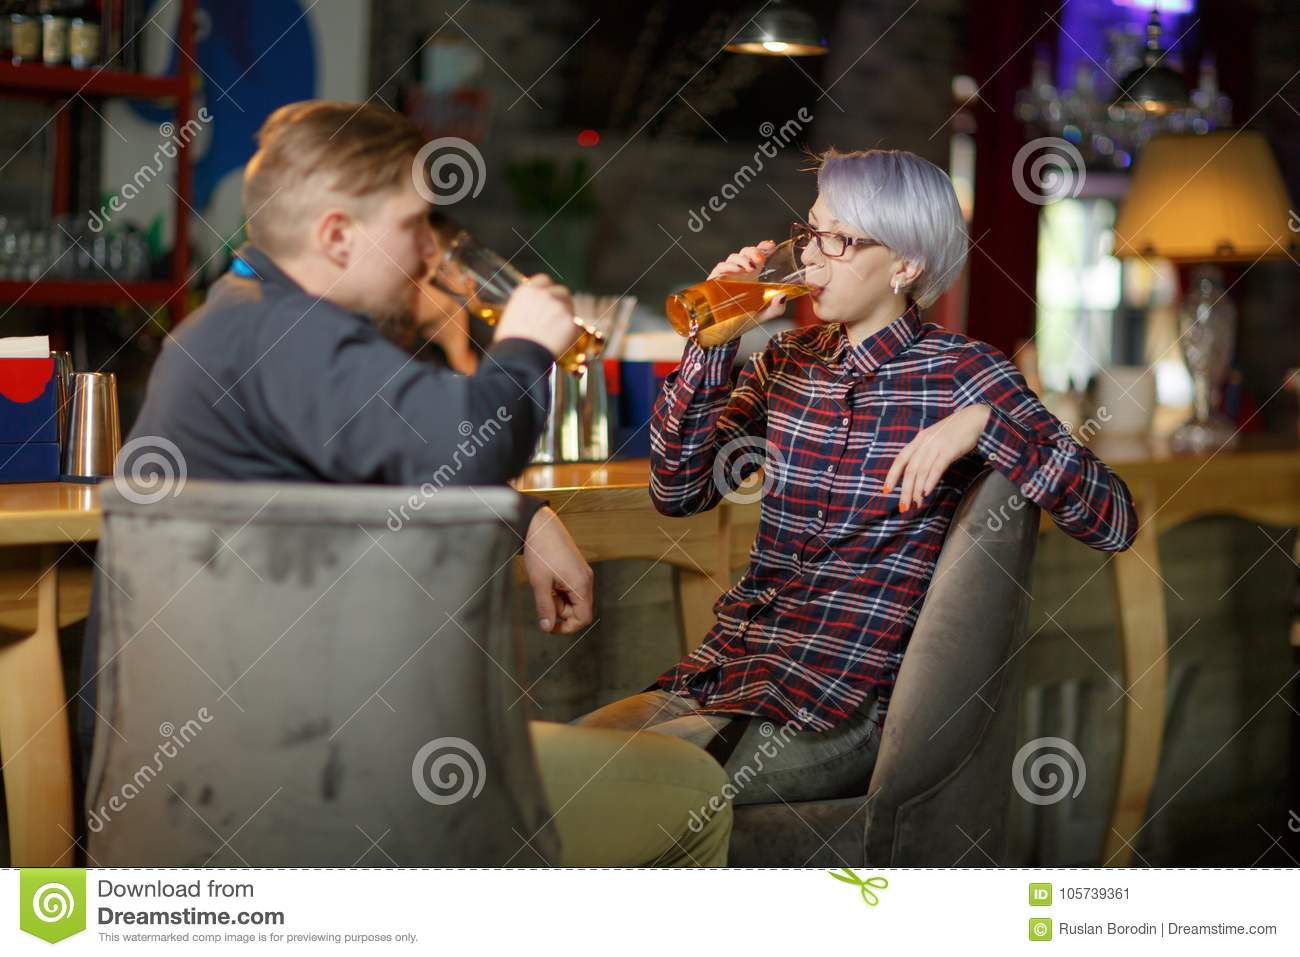 Guys and a girl are drinking beer sitting in a bar. Indoors.